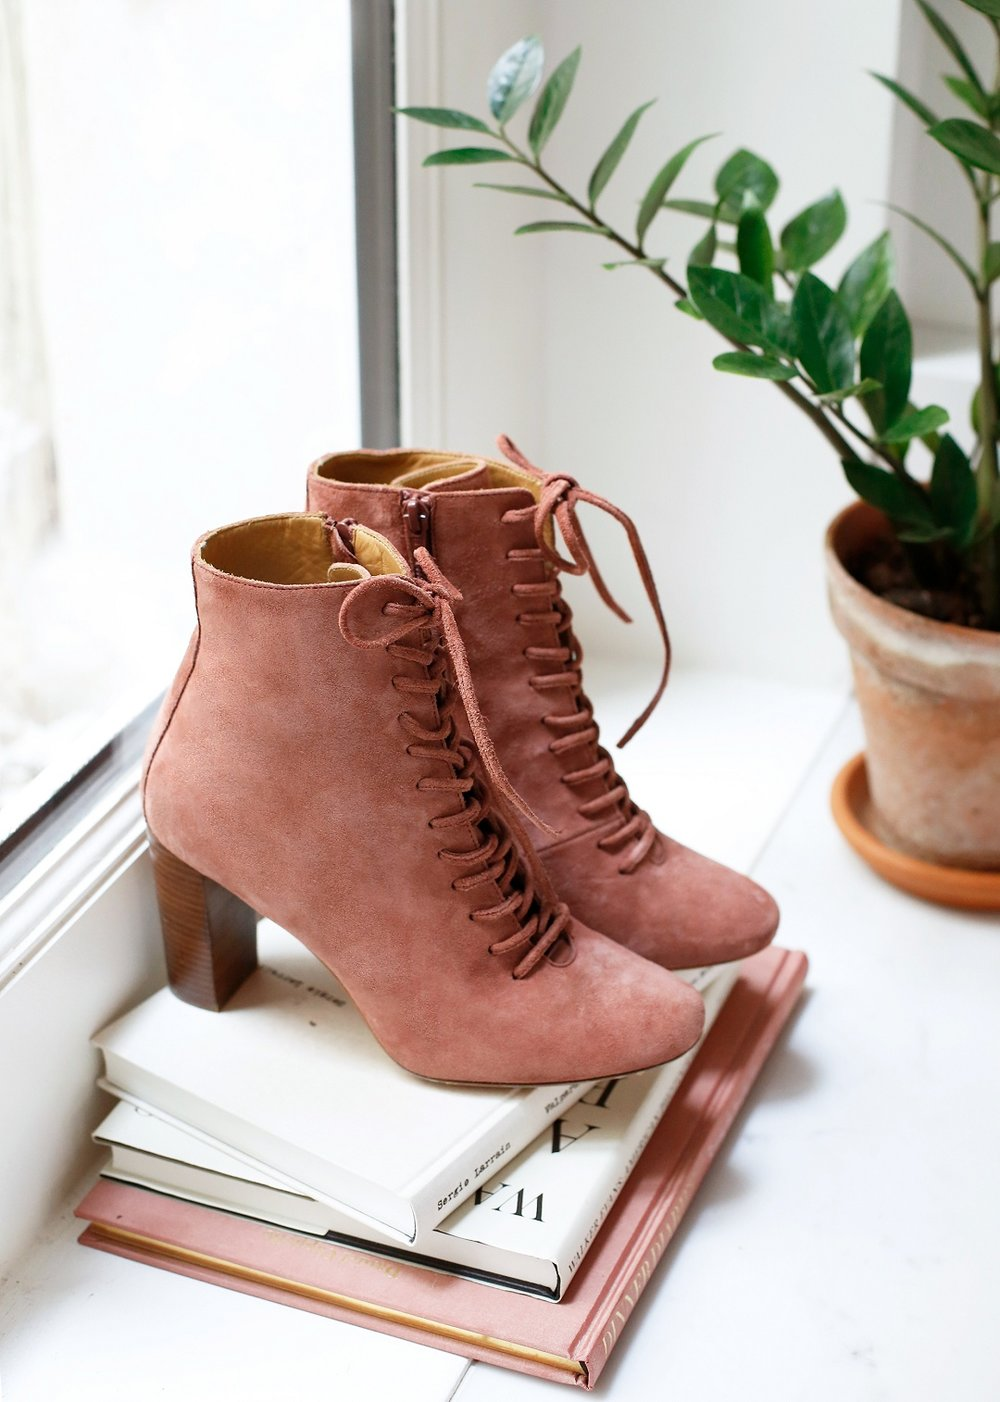 Wear amazing boots you will wear loads after the wedding! Sezane